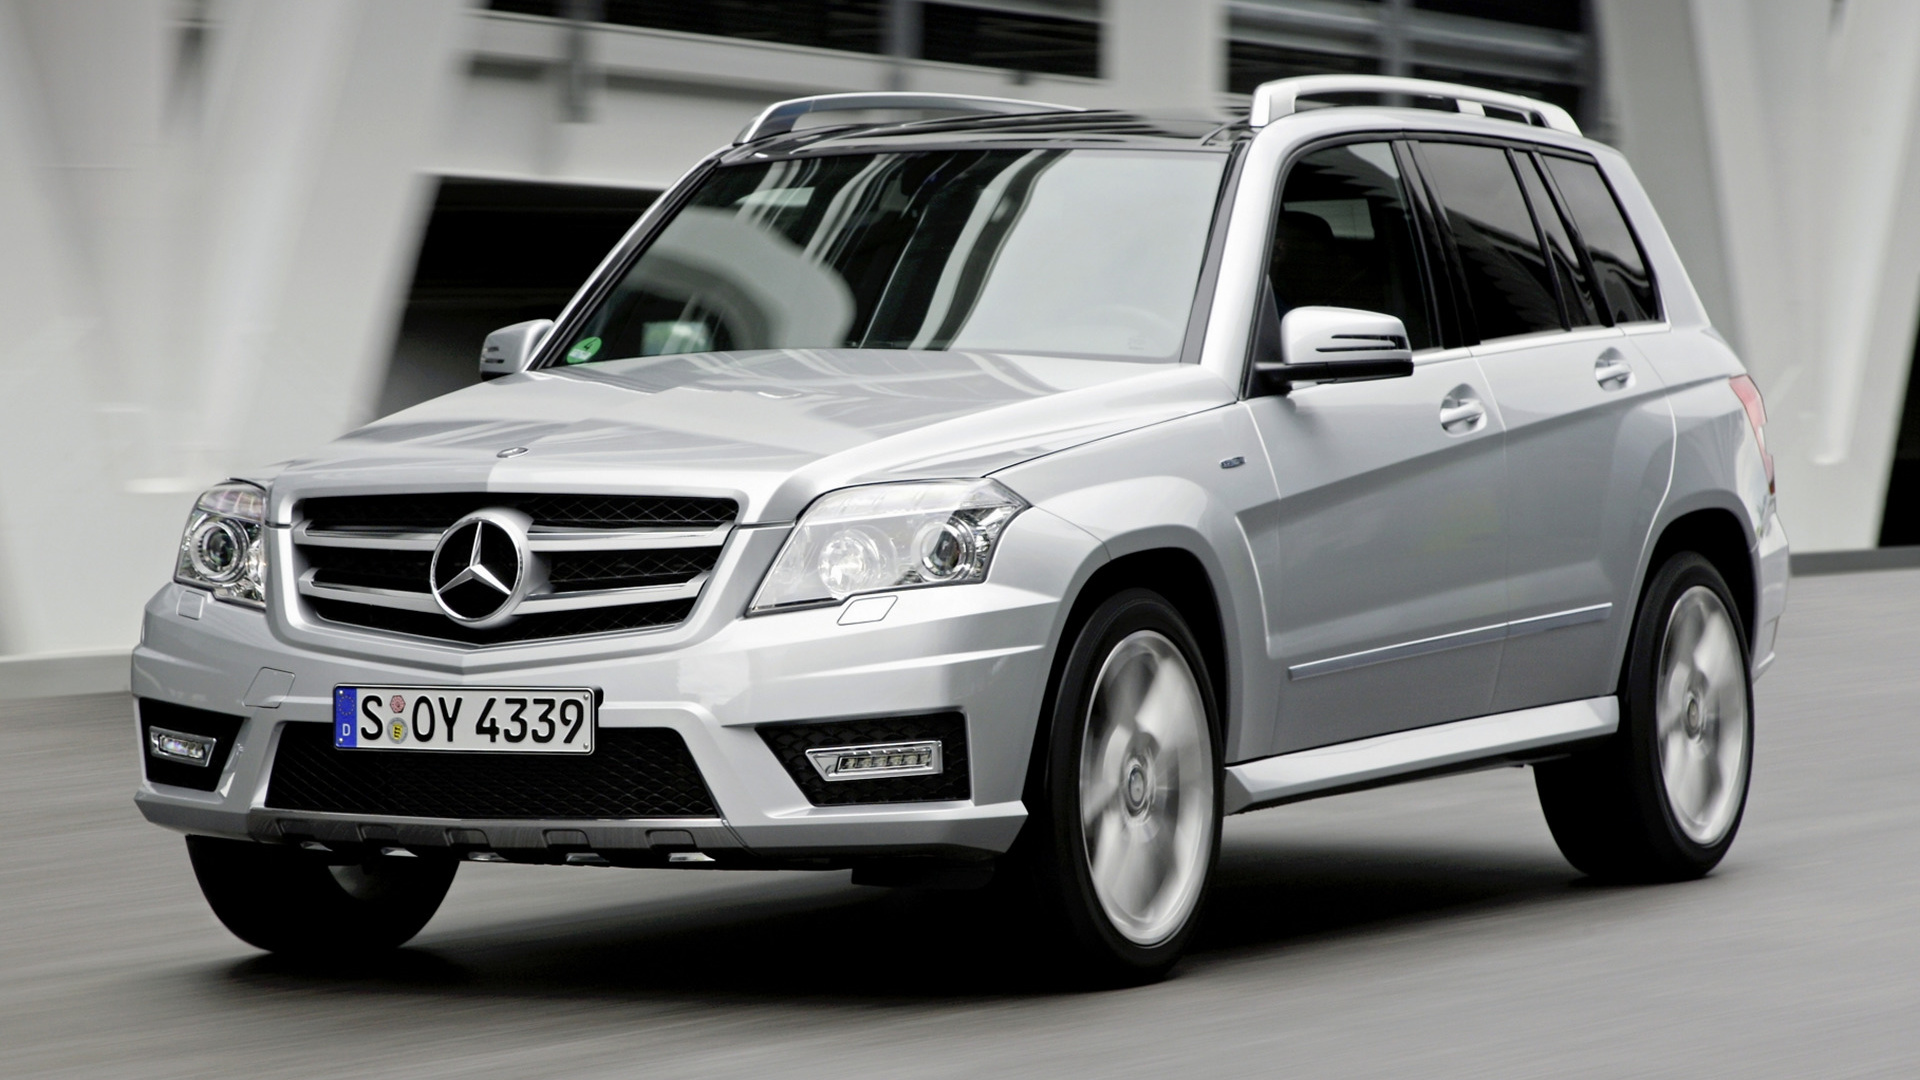 mercedes benz glk class amg styling 2009 wallpapers and hd images car pixel. Black Bedroom Furniture Sets. Home Design Ideas